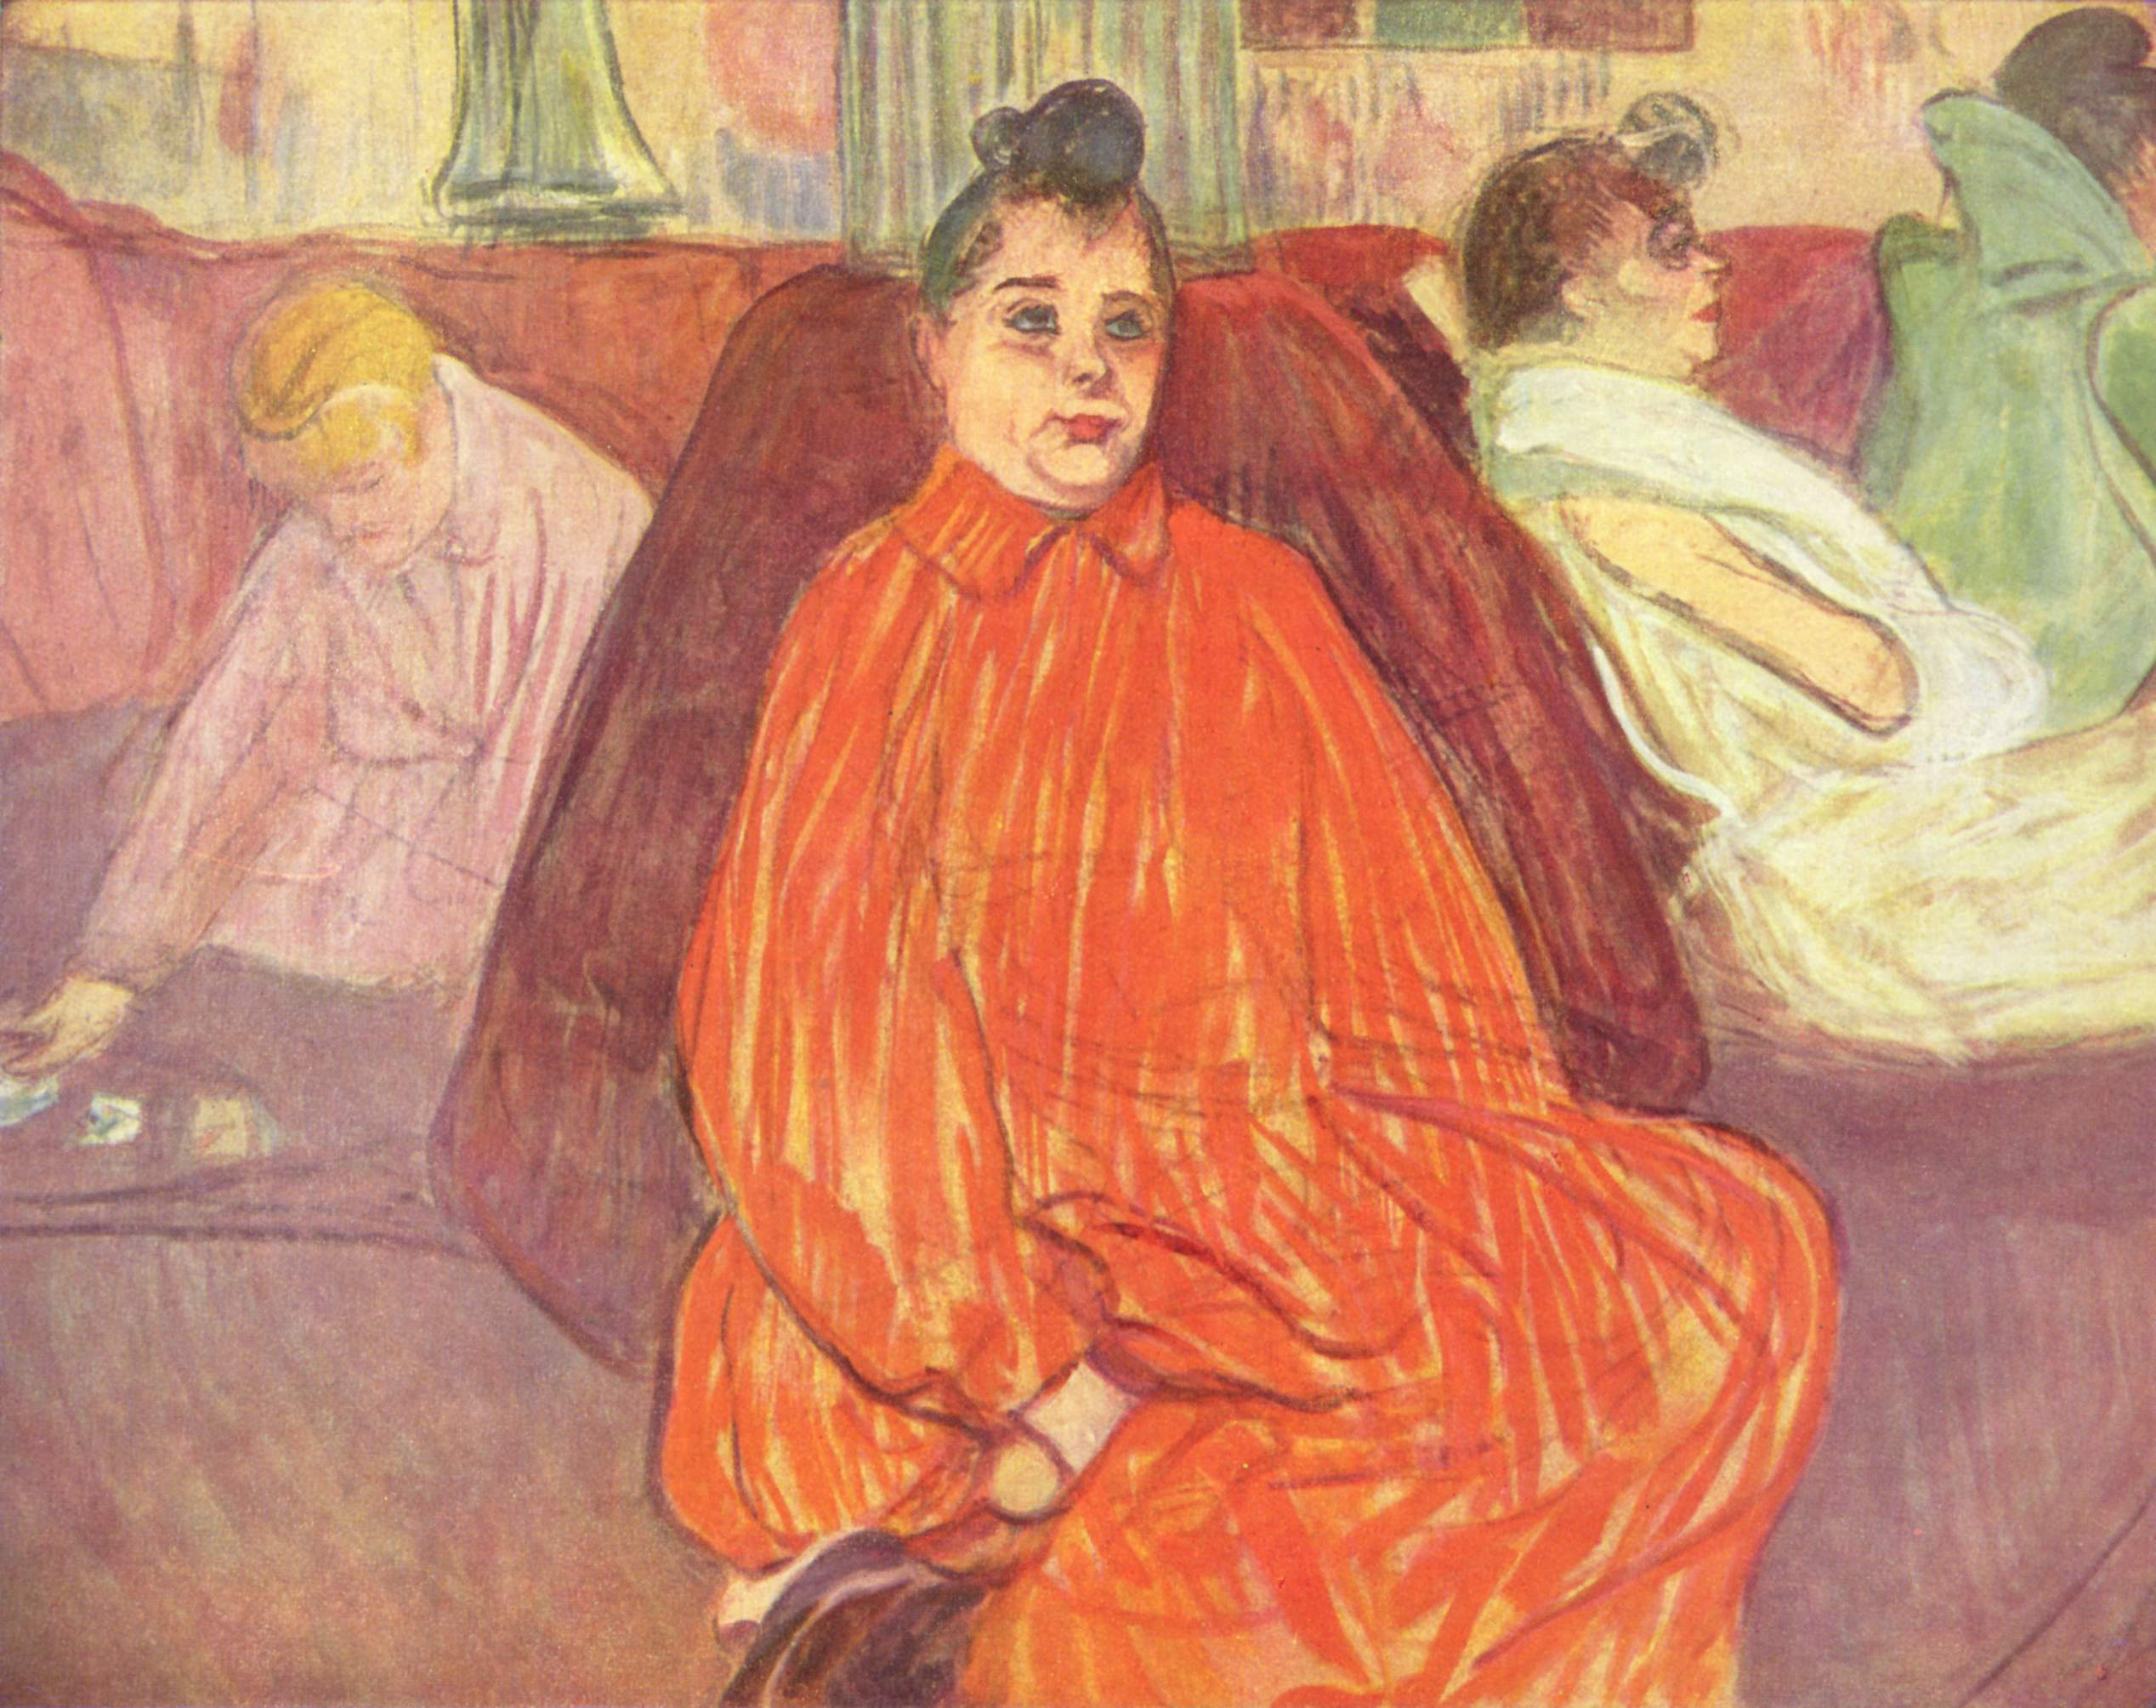 Henri de Toulouse-Lautrec O divã [The Divan], circa 1893, Compra [Purchase], 1958 - Foto: Creative Commons